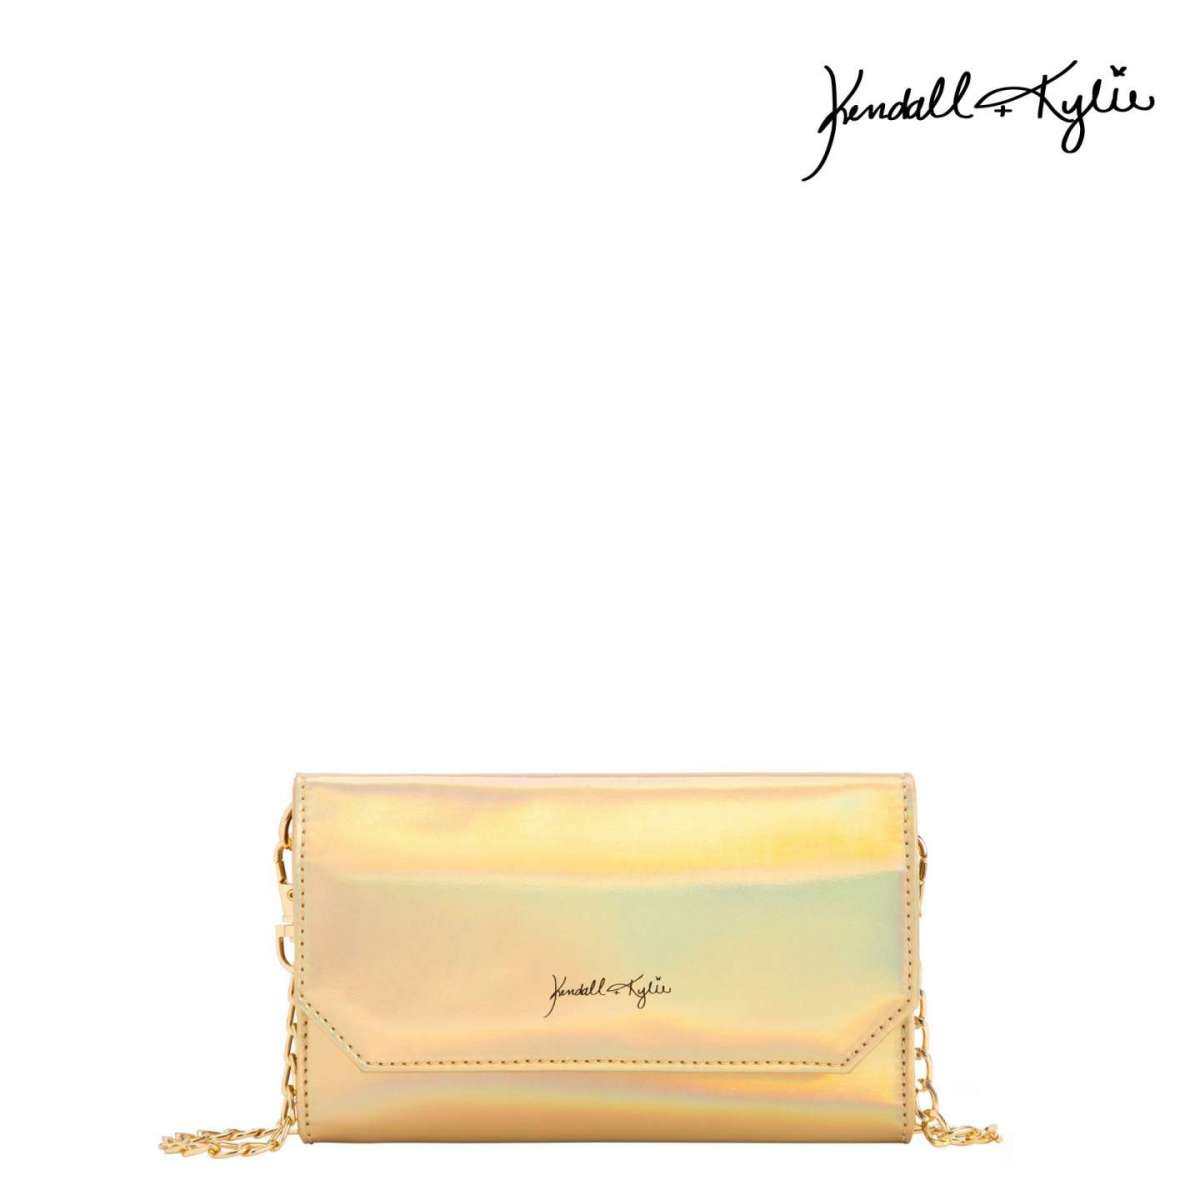 Borsa a tracolla oro Kendall + Kylie for Carpisa a 29,95 euro